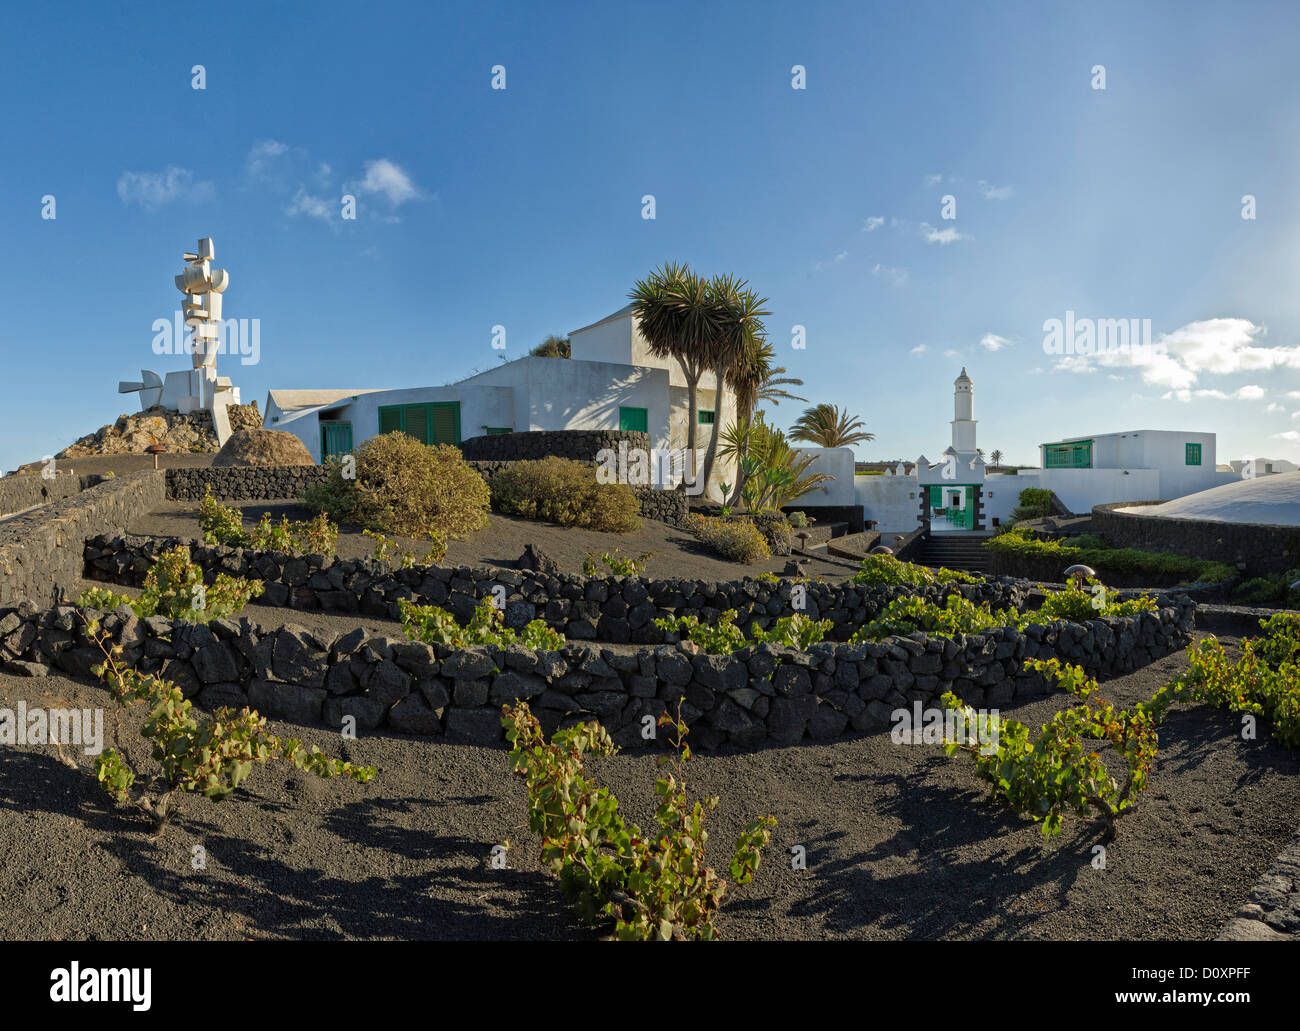 Spain, Lanzarote, Mozaga, Monumento al campesina, monument, city, village, summer, Canary Islands, - Stock Image